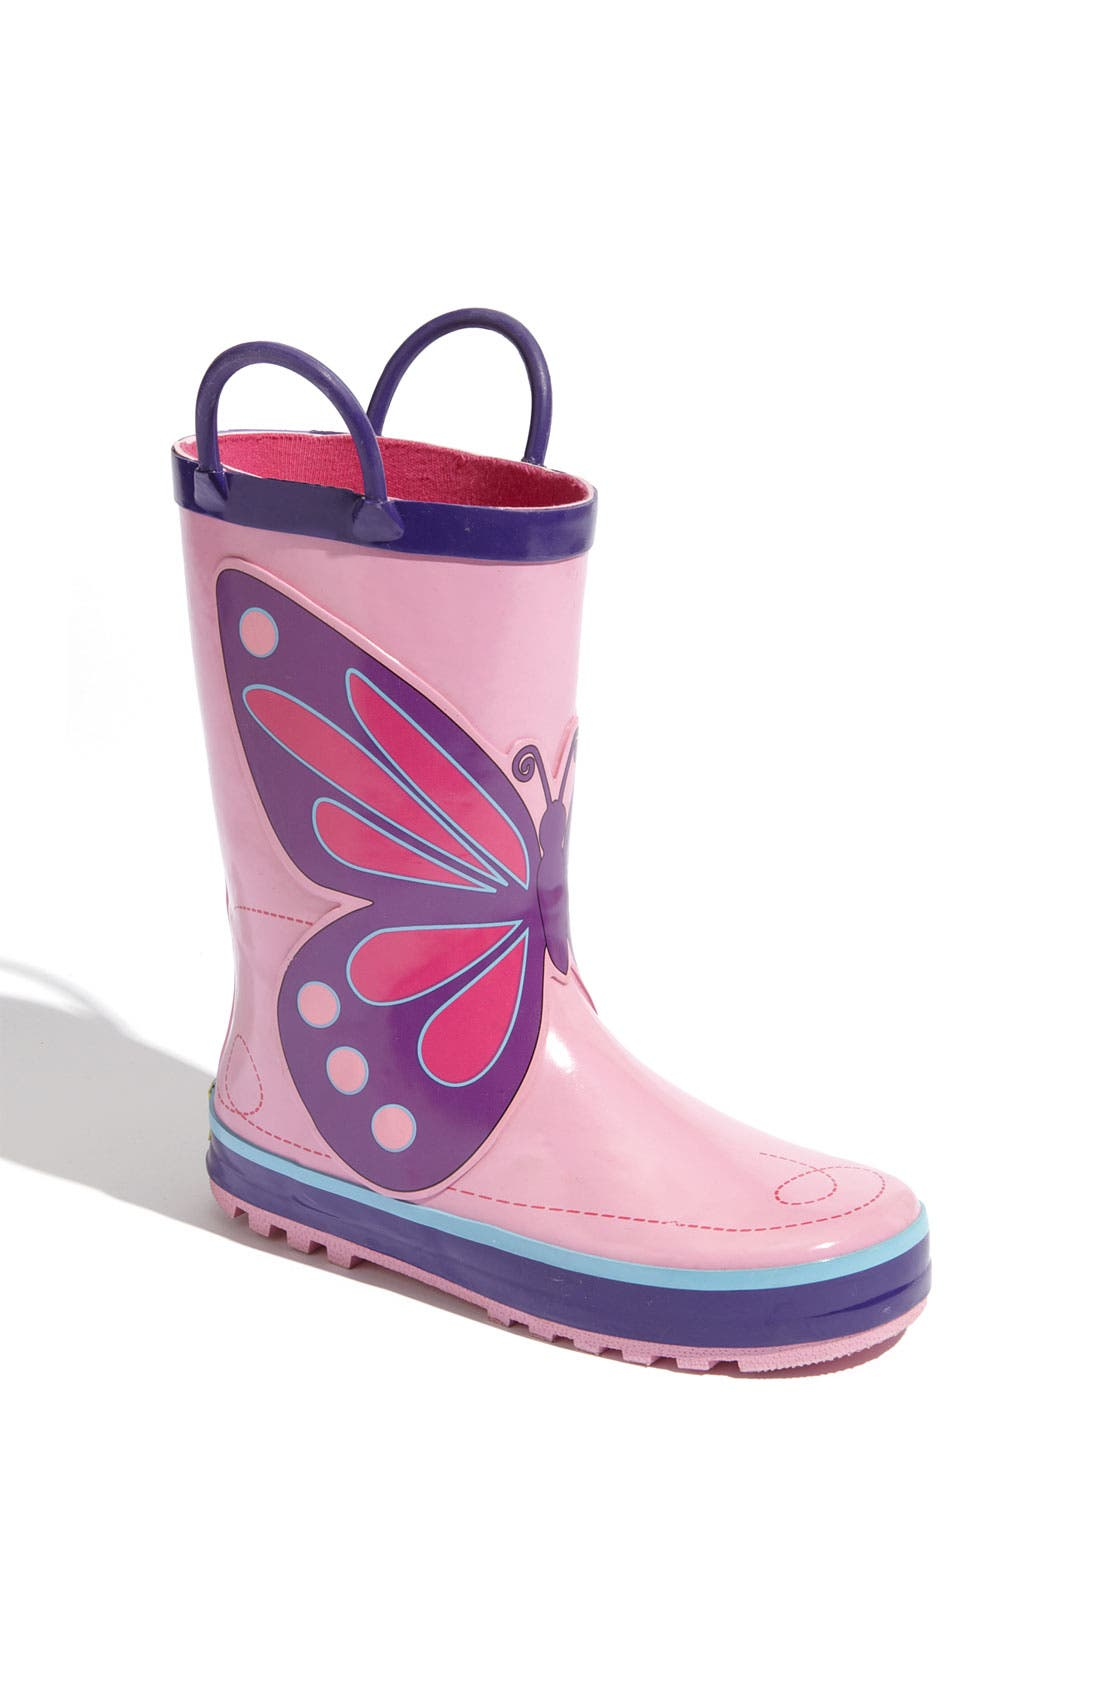 Main Image - Western Chief 'Wings' Rain Boot (Walker, Toddler & Little Kid)